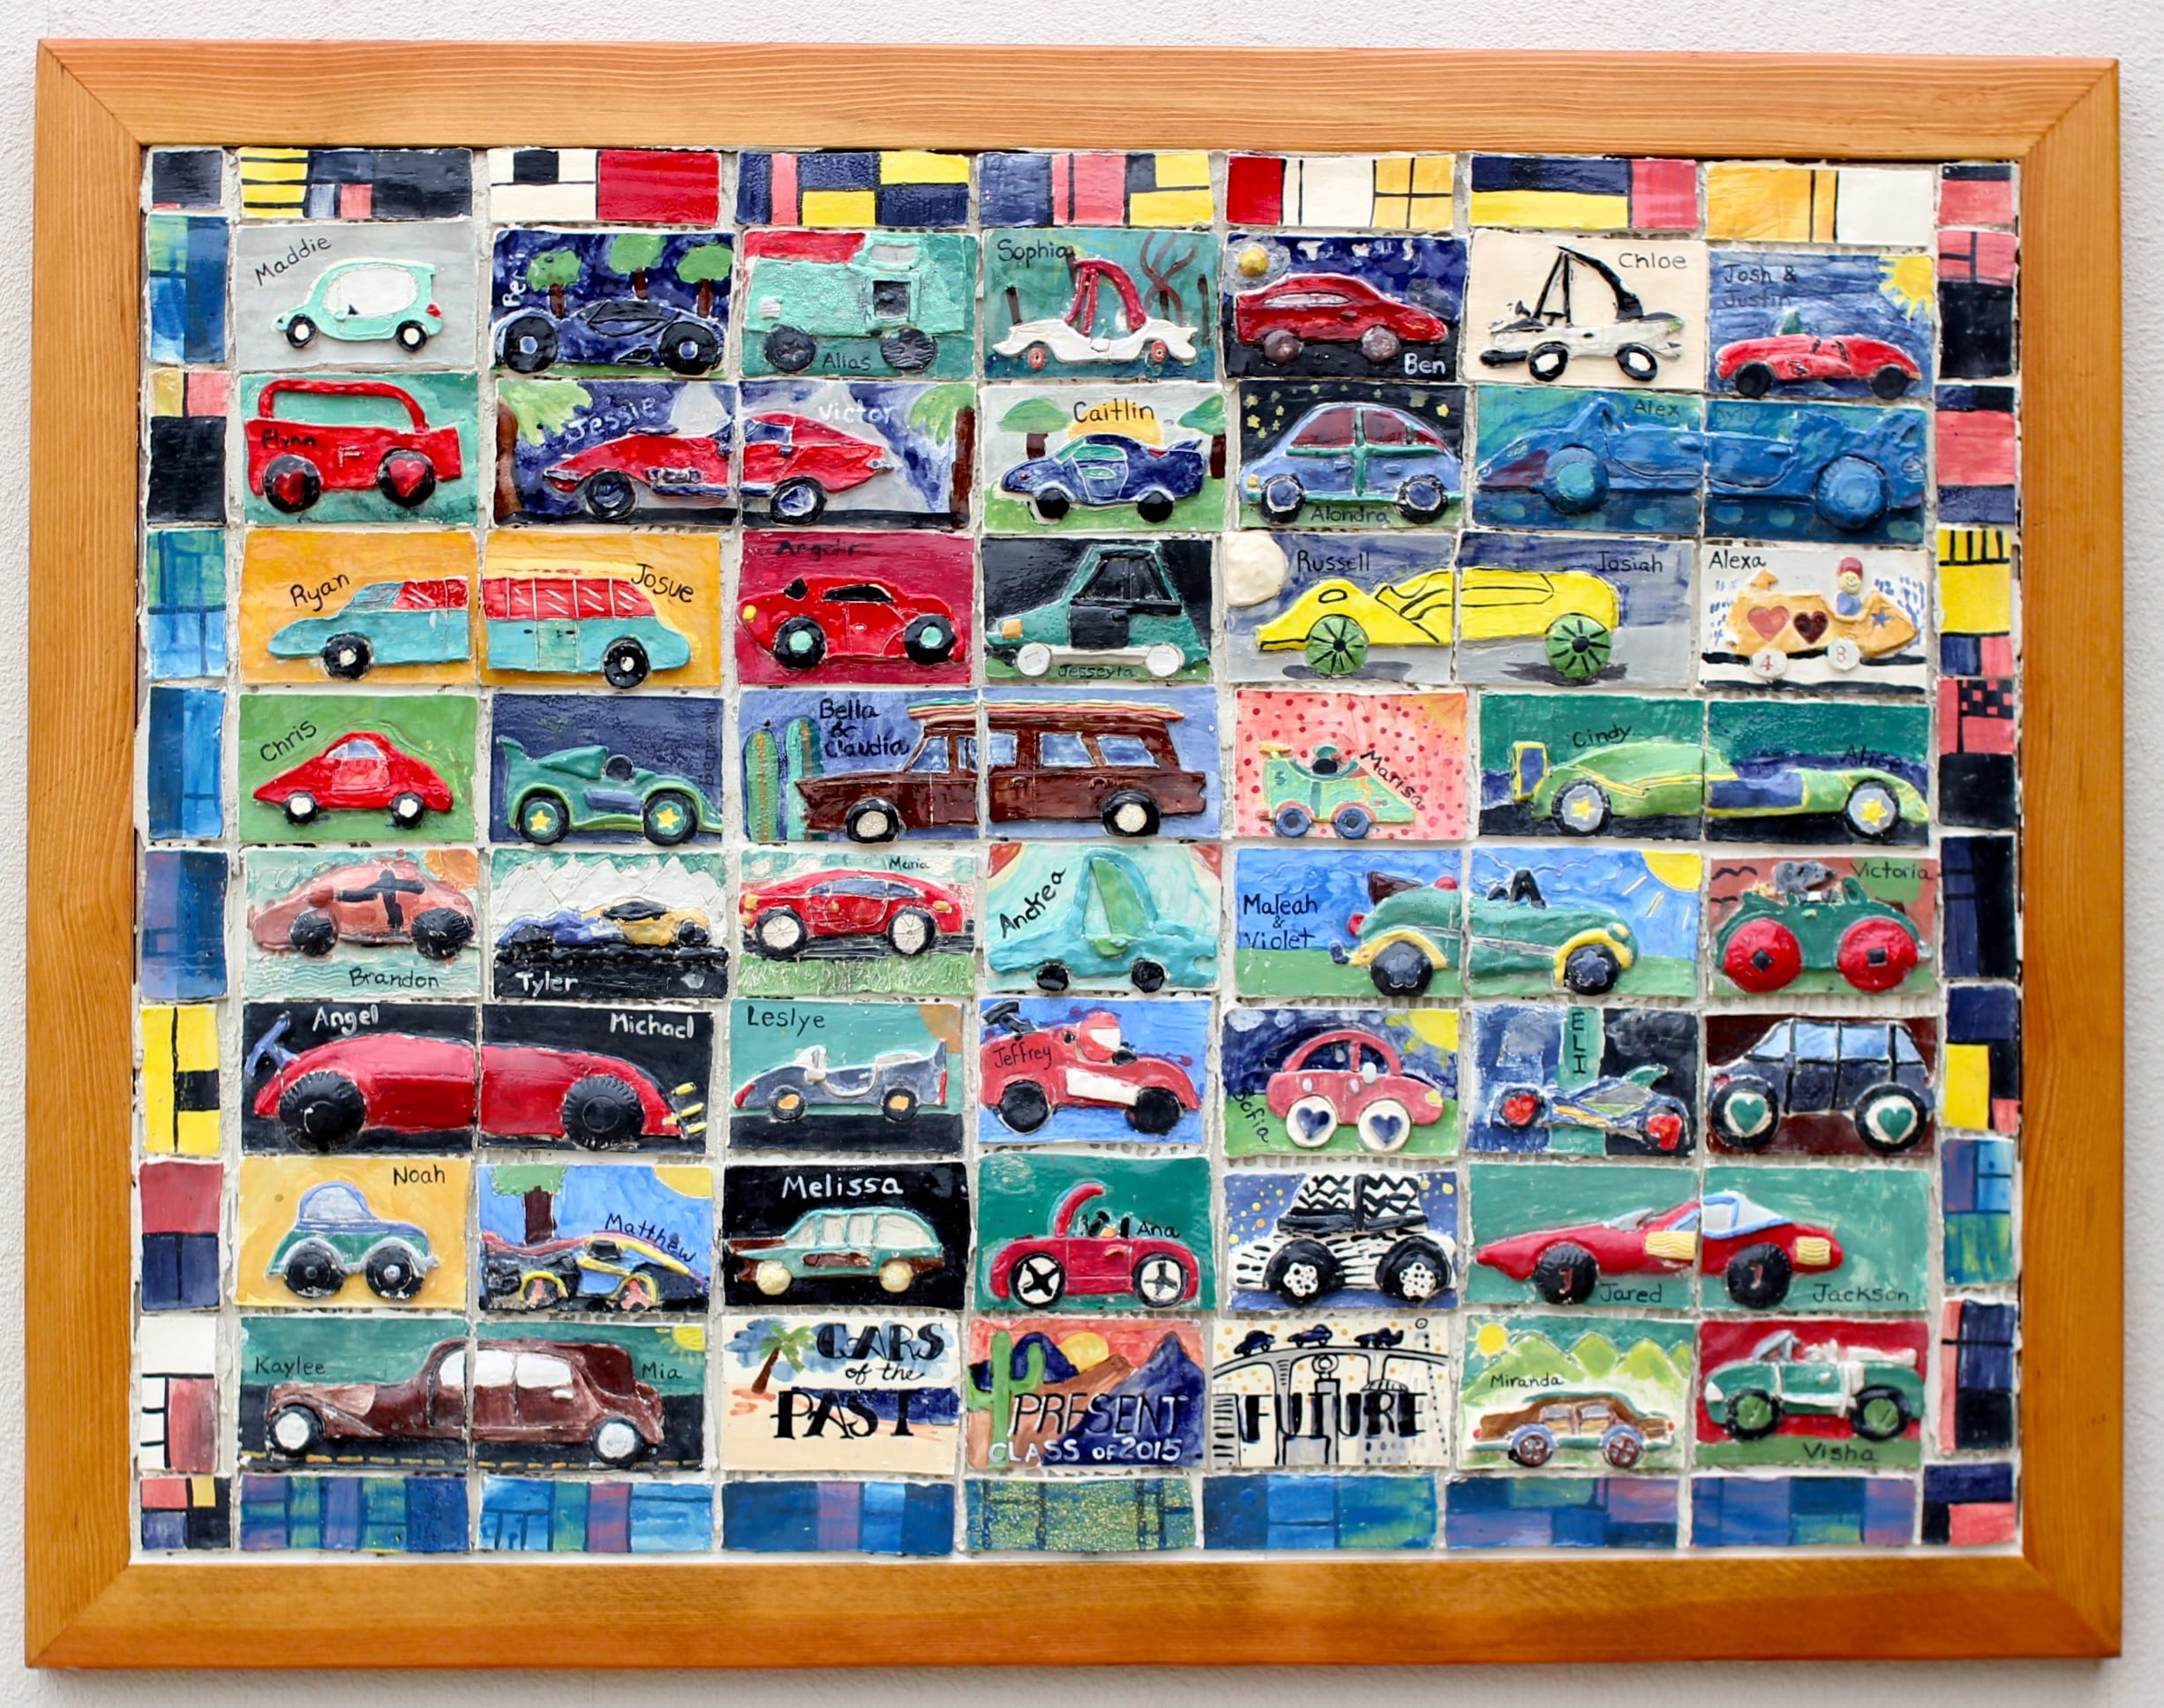 Cars past present future collaborative ceramic tile mural cars past present future collaborative ceramic tile mural project for kids doublecrazyfo Images